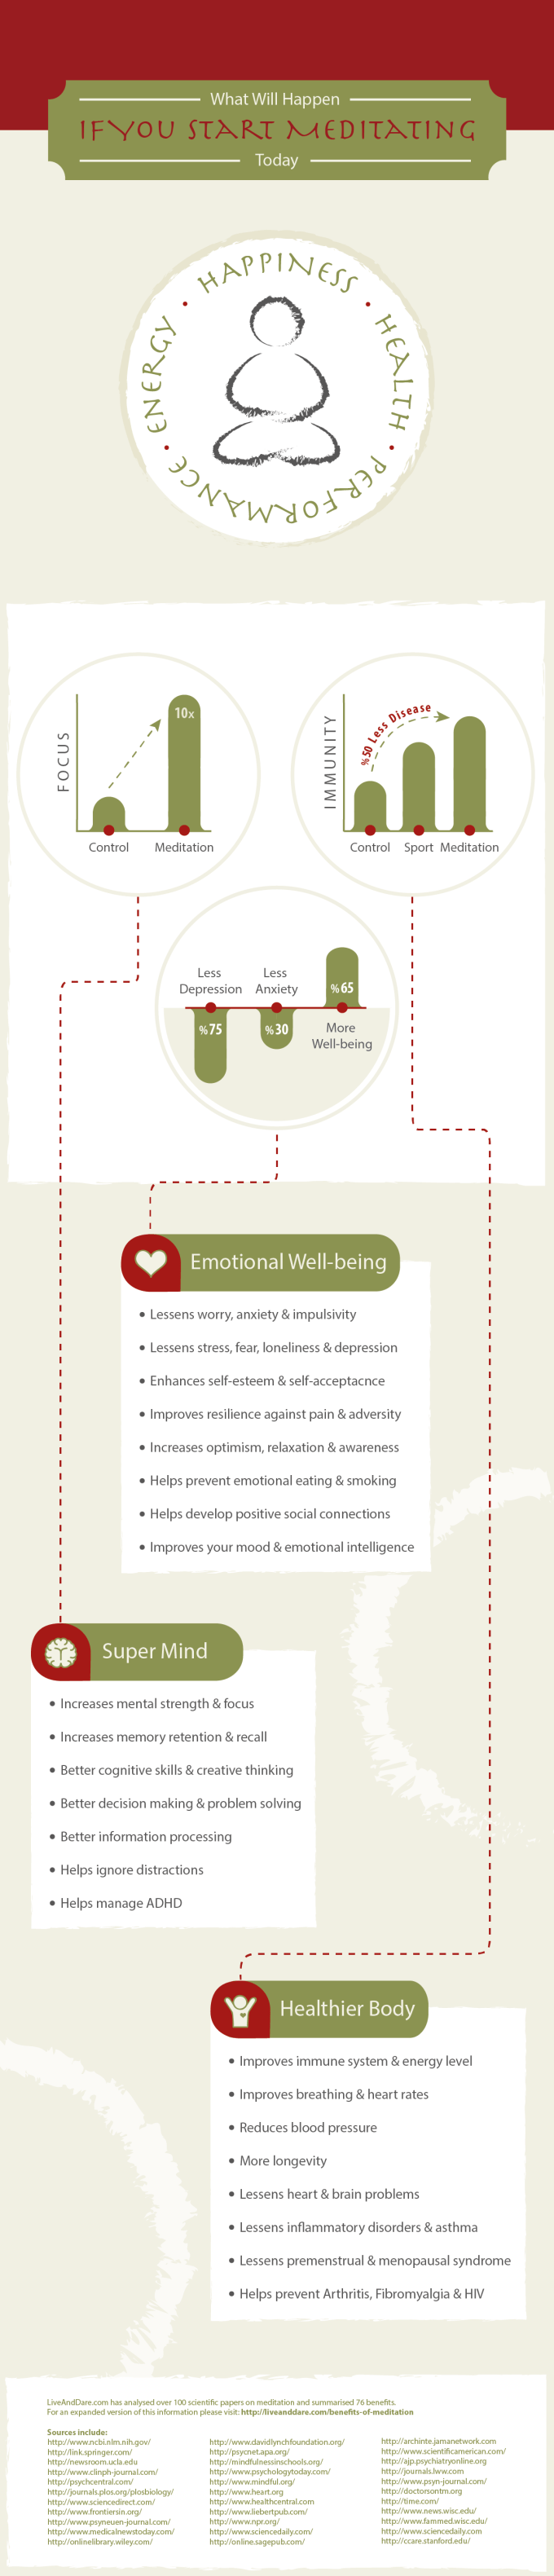 Benefits-of-Meditation-Infographic